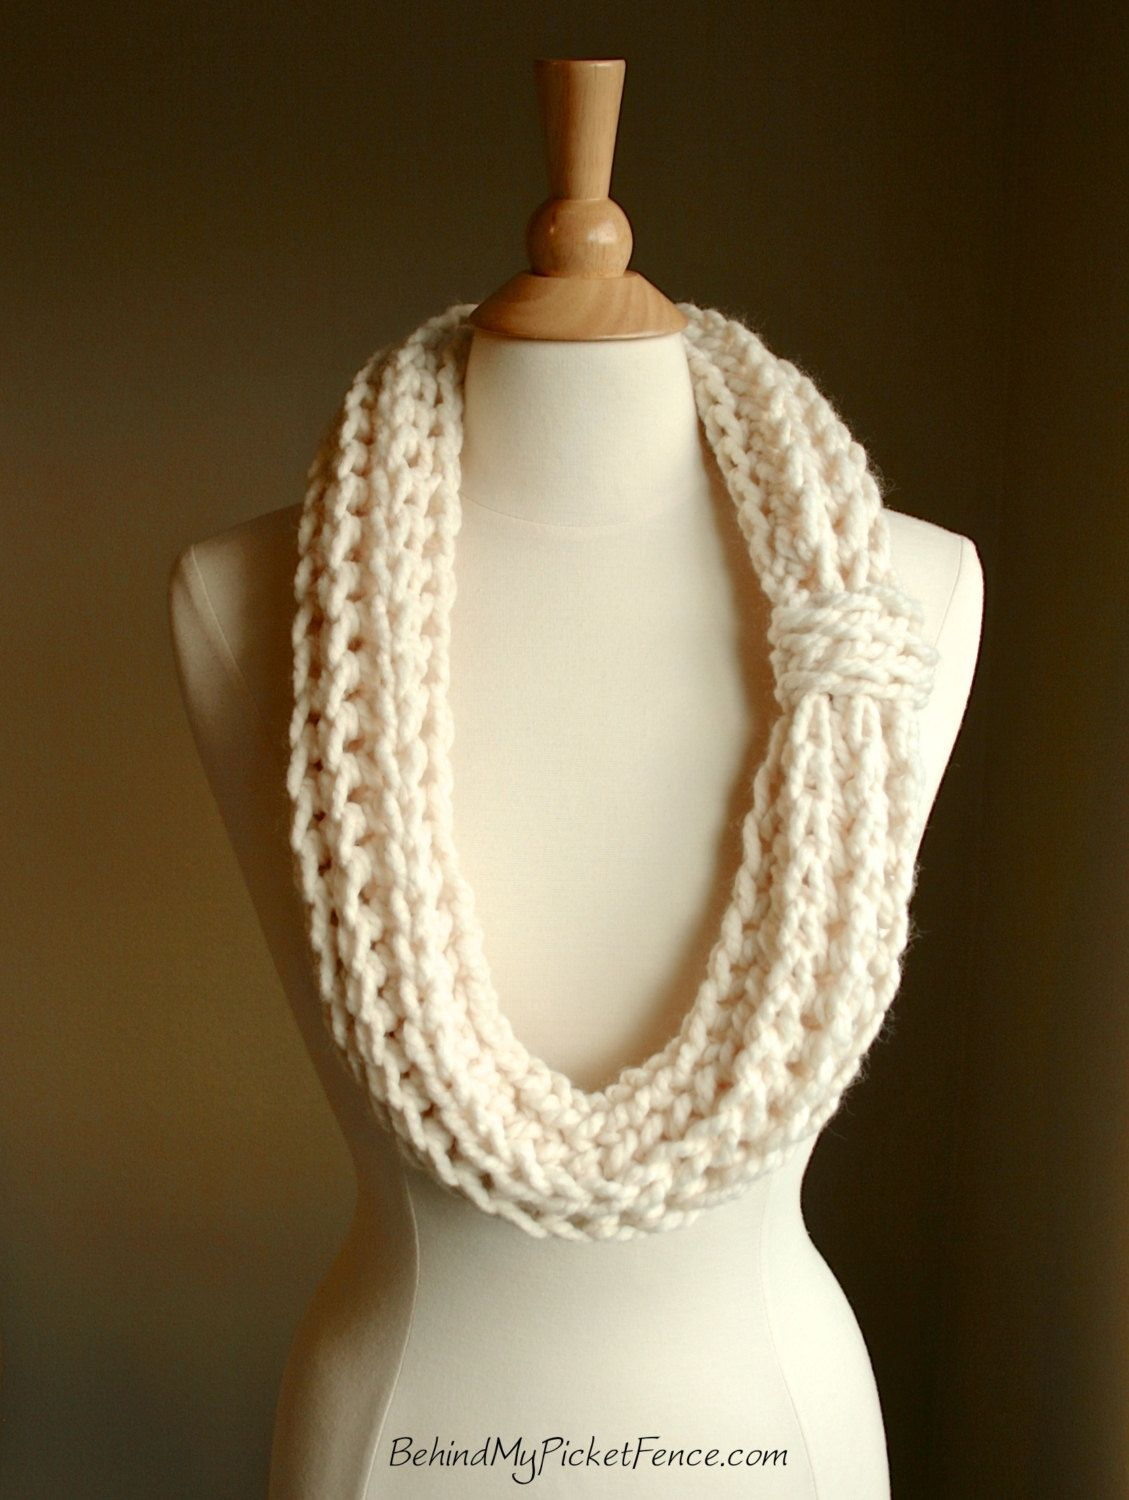 ☆New☆ KNOTICAL INFINITY SCARF - Handmade in the USA -Thick ...